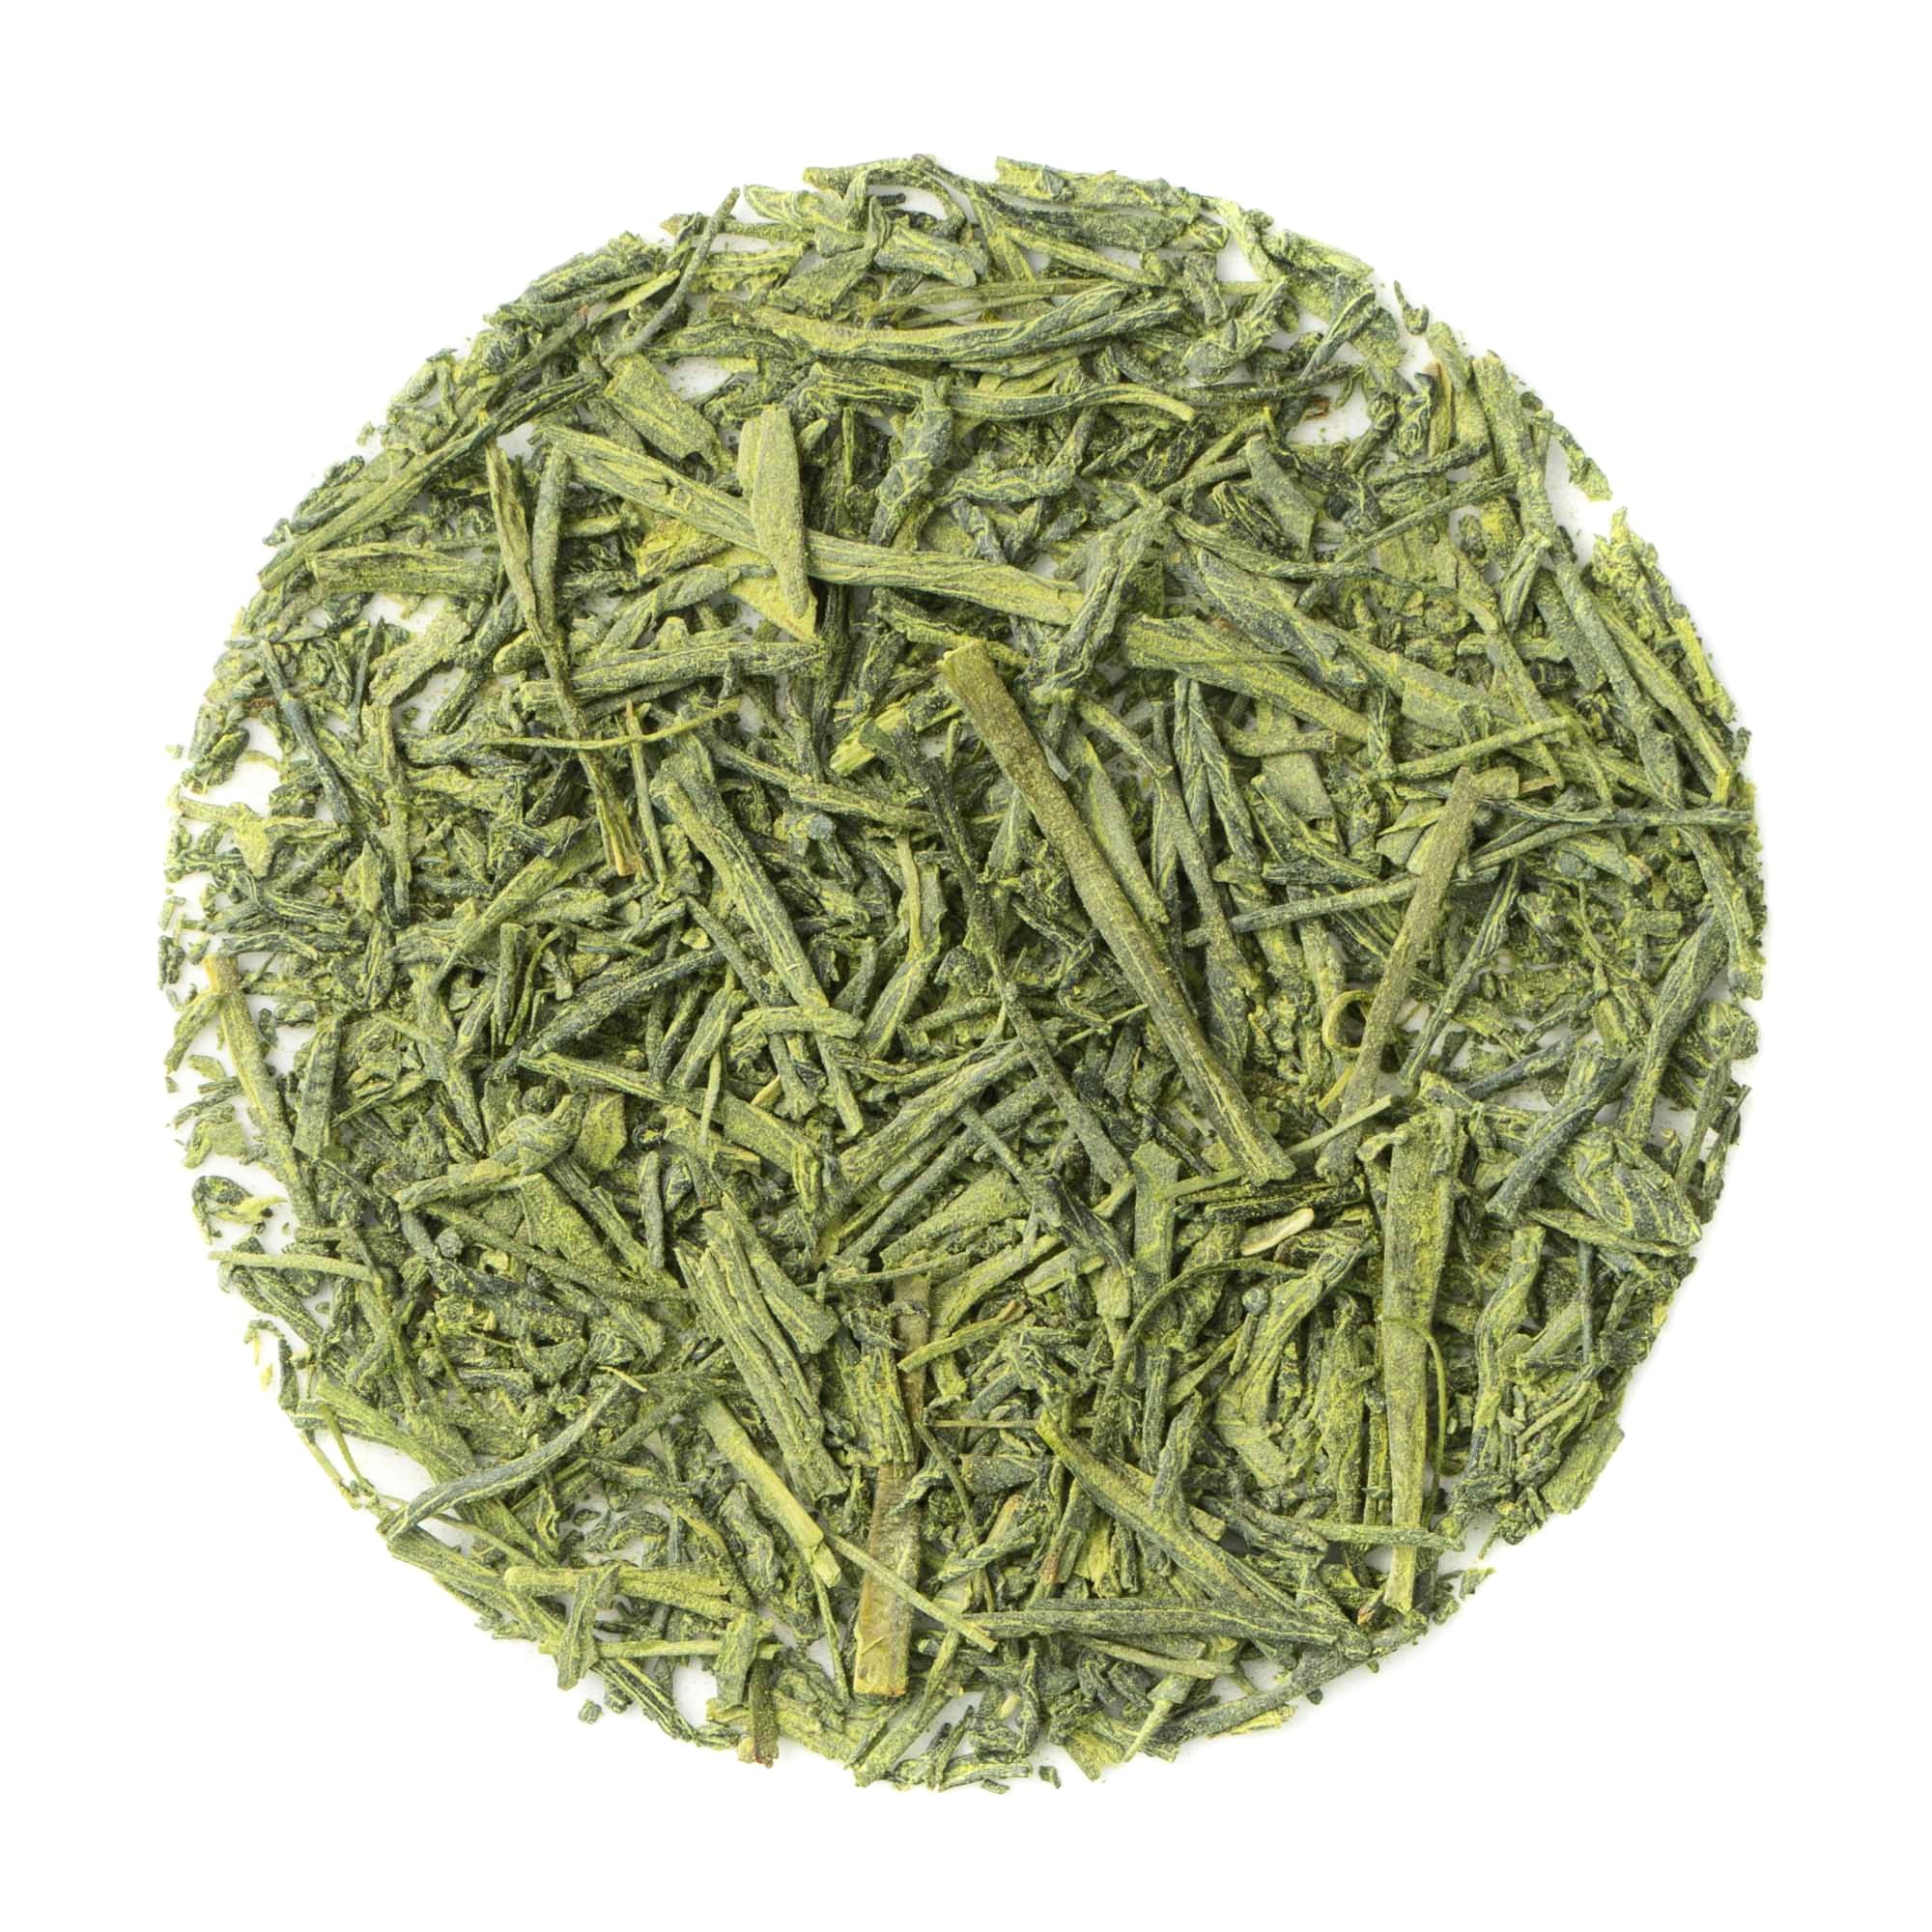 Matcha - Matcha Green Tea - Matcha Tea Blends - Matcha Green Tea Powder - Ceremonial Grade Matcha Green Tea Powder - Premium Matcha Green Tea - Buy Matcha Online - Heavenly Tea Leaves